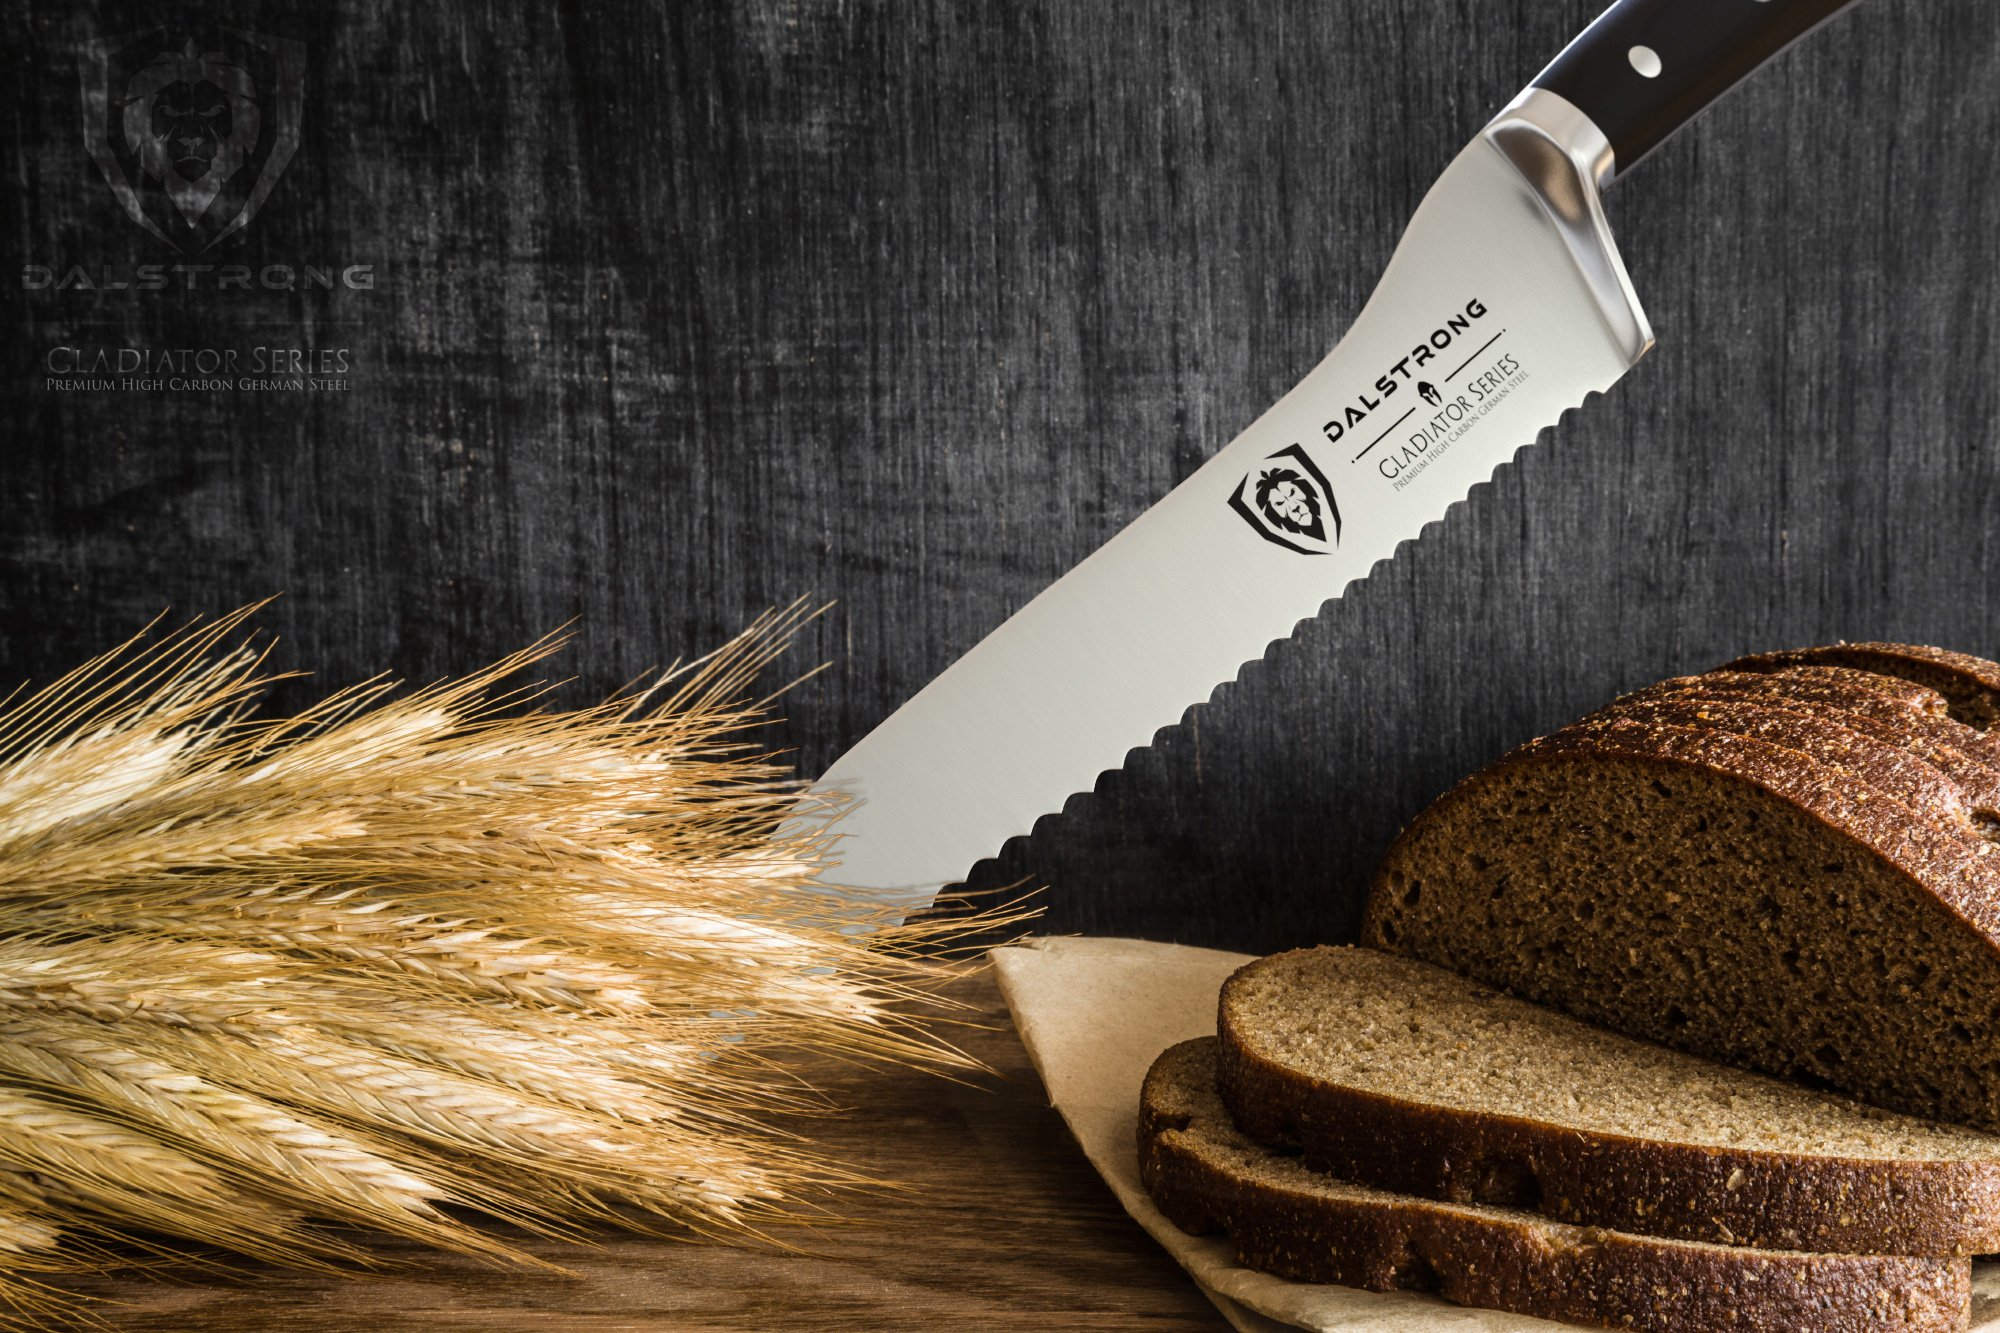 DALSTRONG Serrated Offset Bread & Deli Knife - Gladiator Series- 8''- German HC Steel - Guard Included by Dalstrong (Image #6)